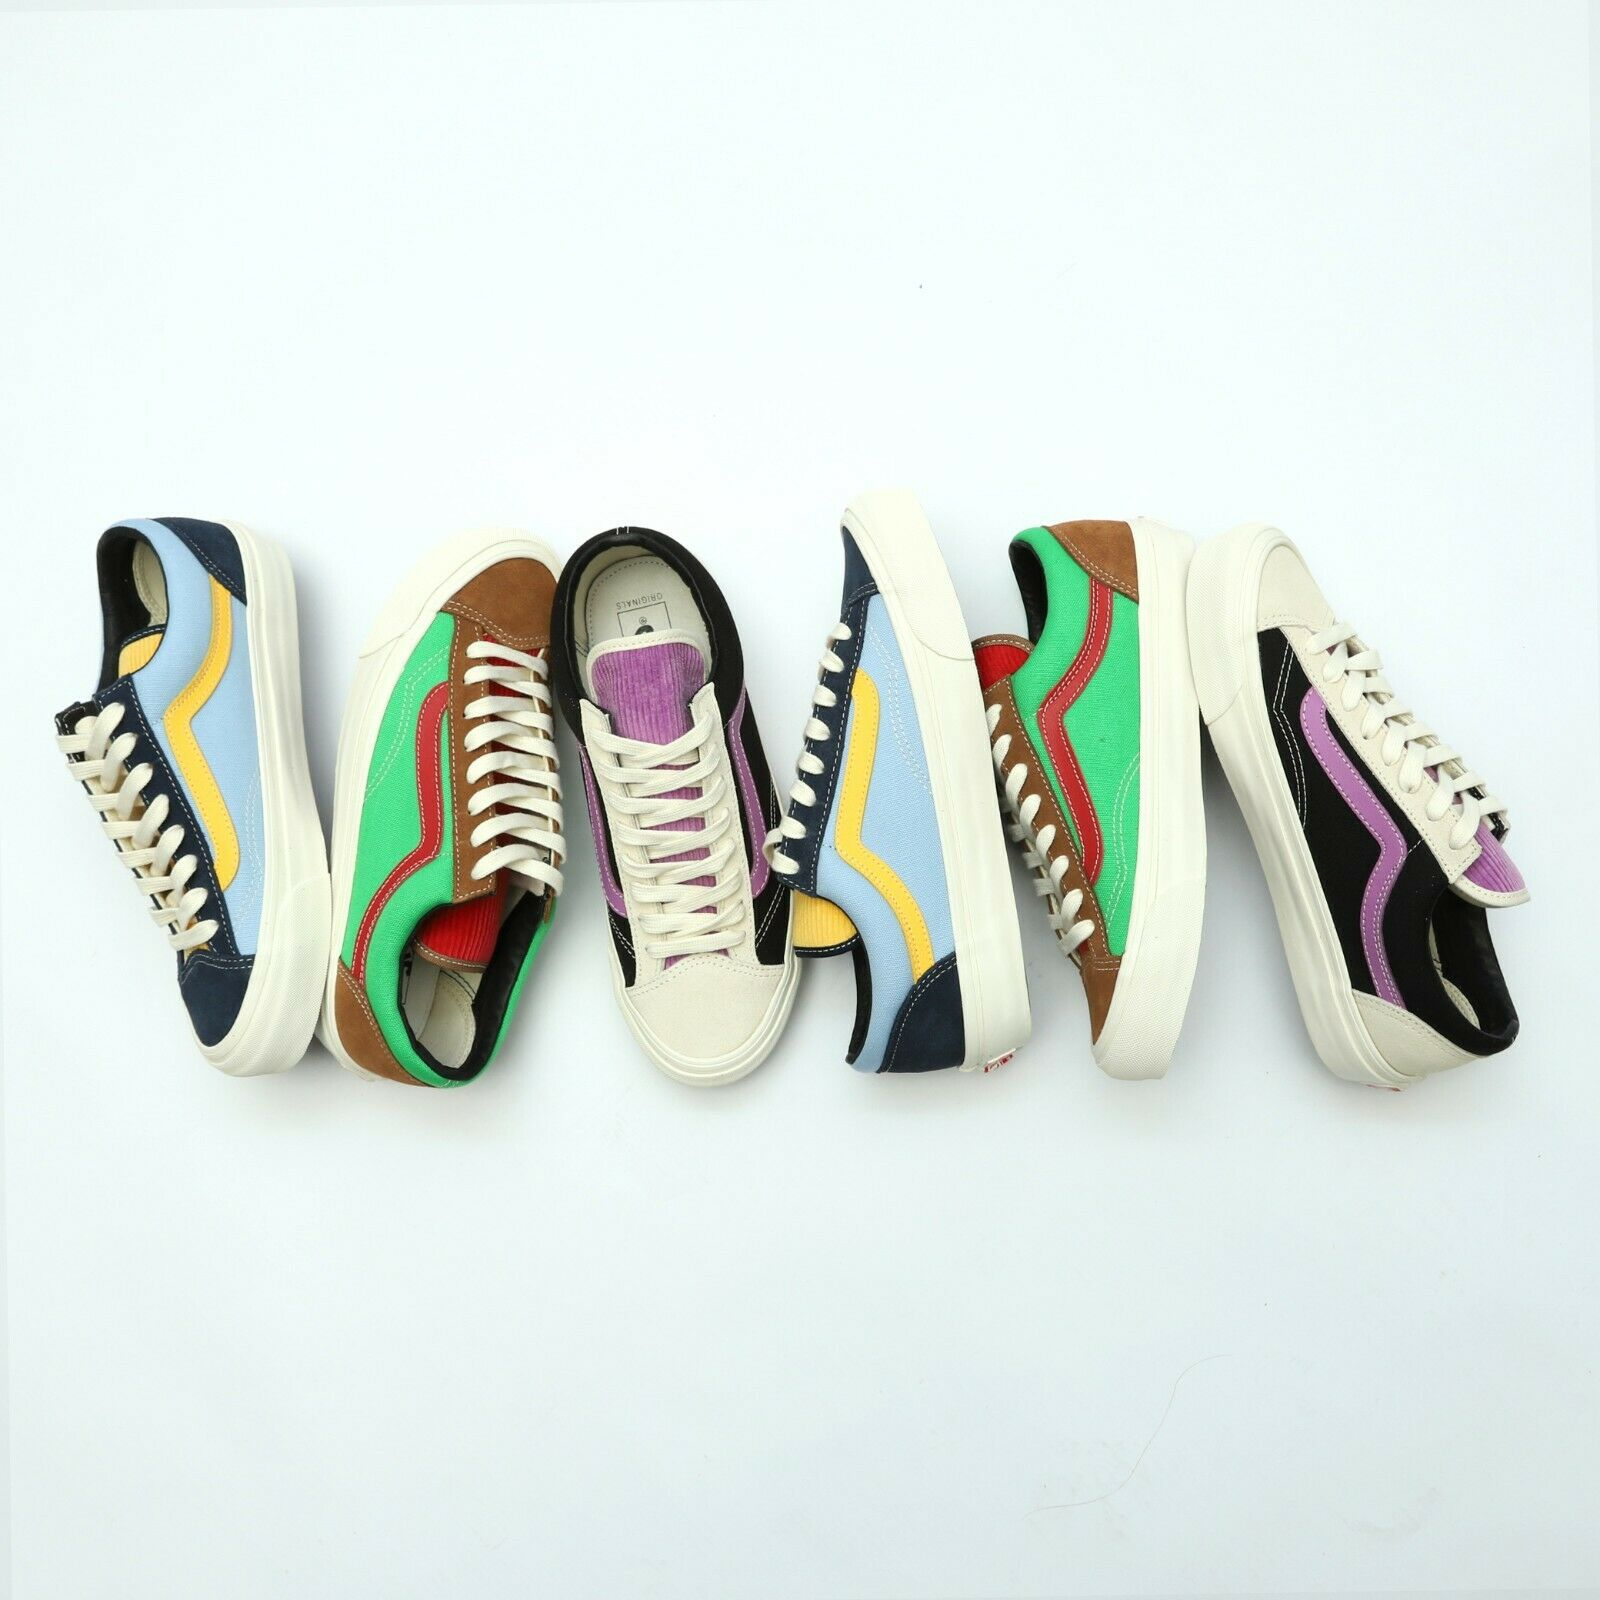 Details zu Vans Vault OG Style 36 LX Old Skool Suede Corduroy Canvas Skateboarding Shoes